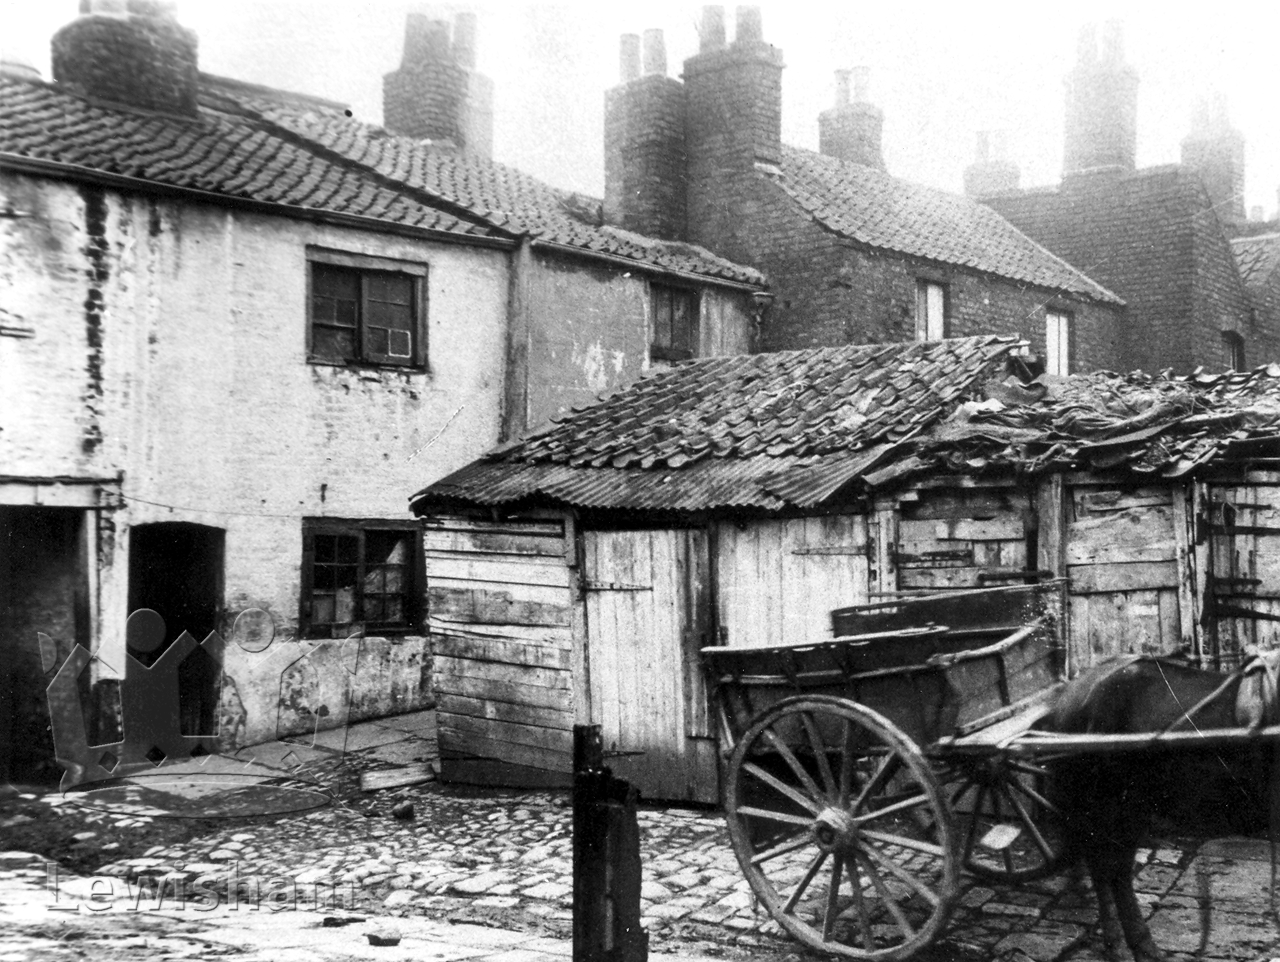 X4 >> Deptford, Backyards Of Houses In Old Mill Lane - Lewisham Borough PhotosLewisham Borough Photos